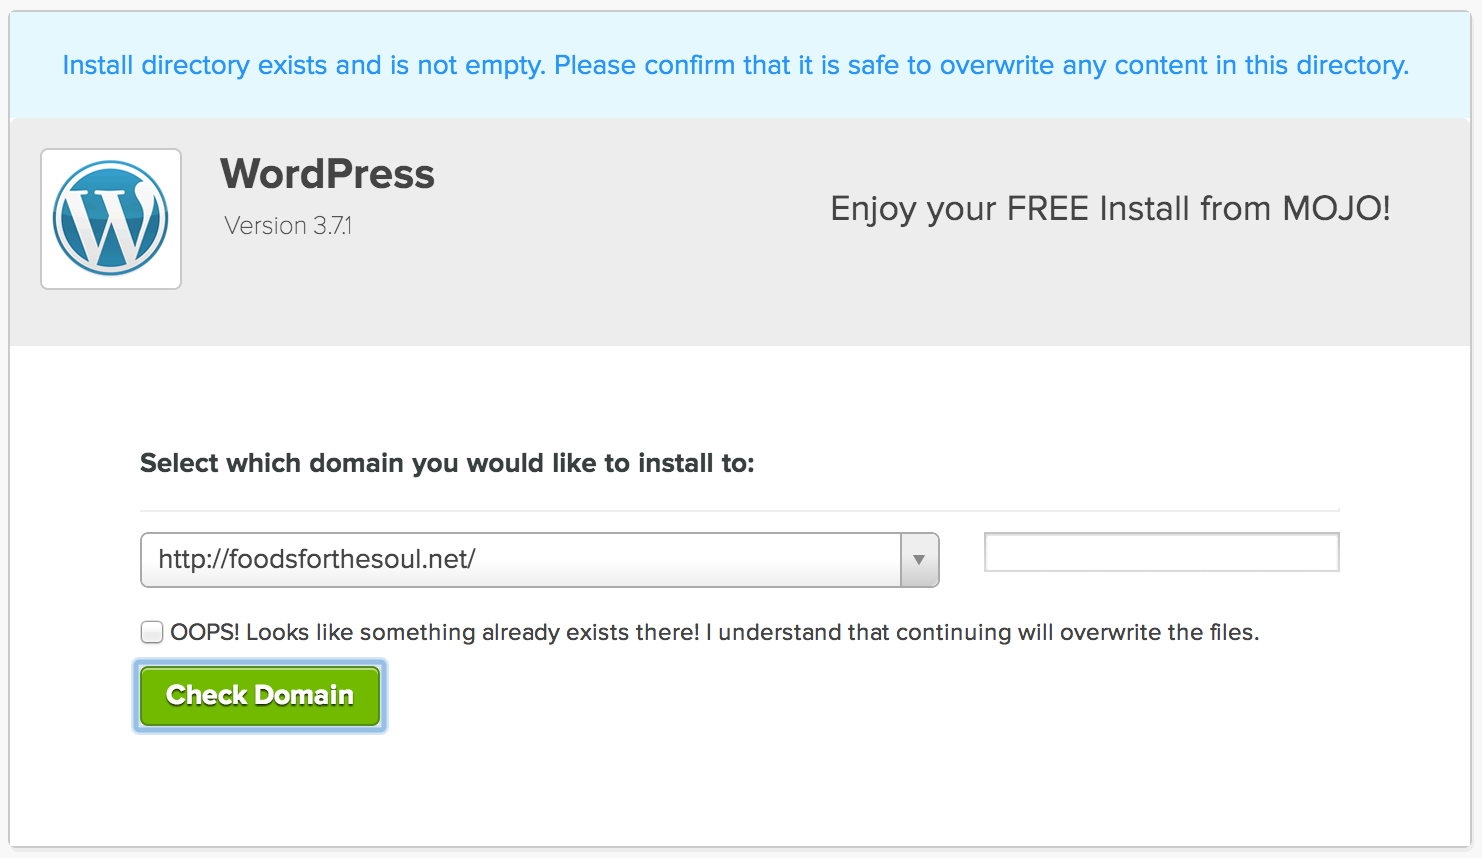 Setting Up WordPress -- Overwriting | How To Switch Your Blog To Be Self-Hosted {foodsforthesoul.net}